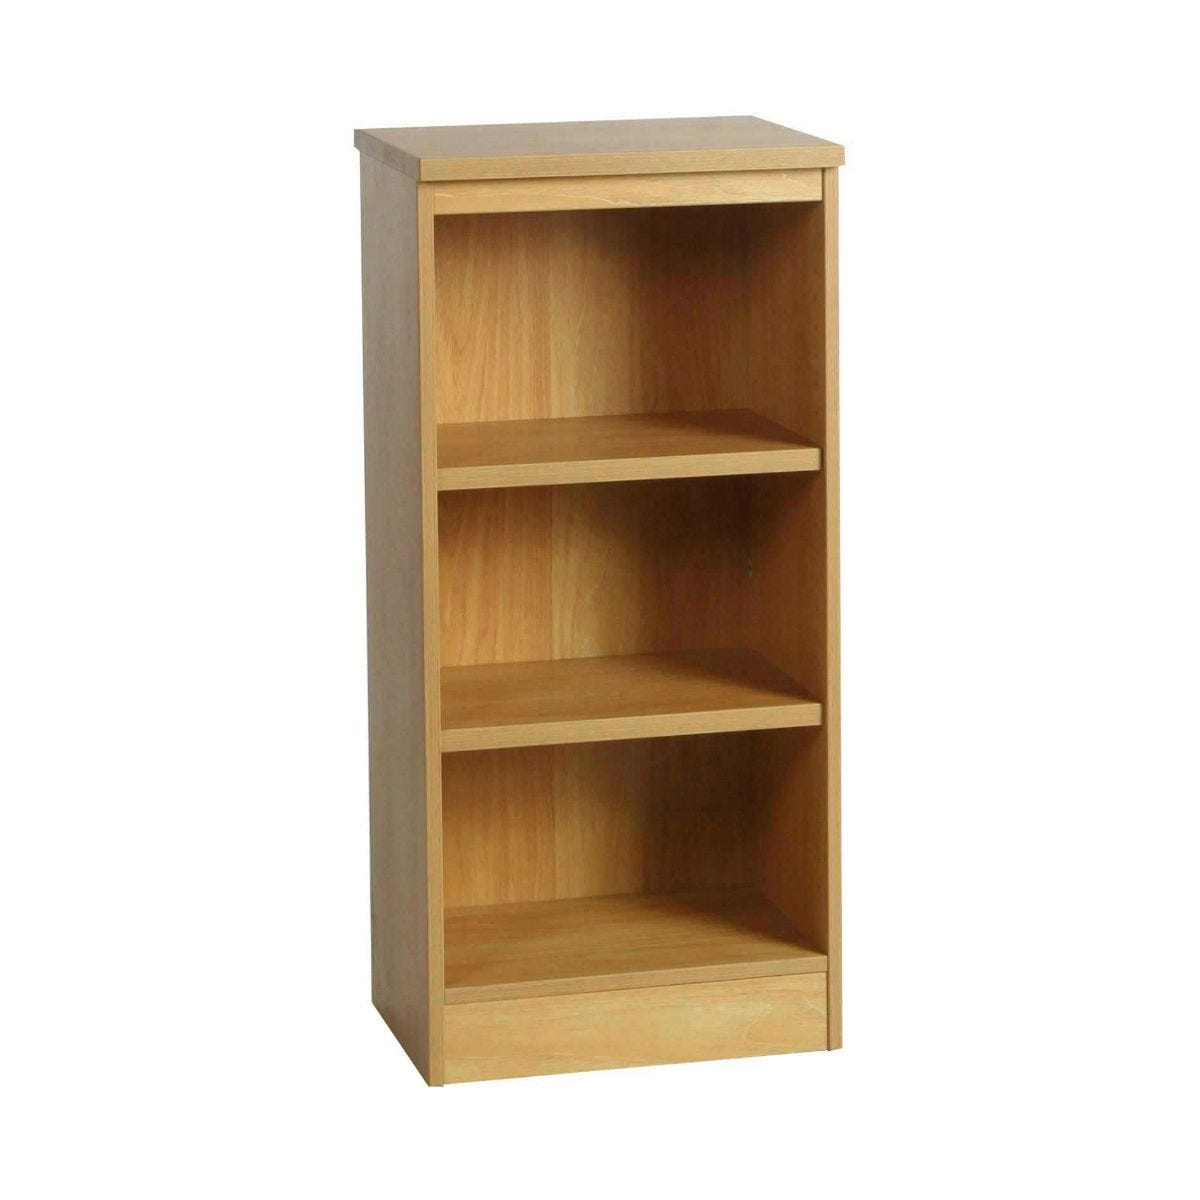 R White Mid Level Bookcase M-B48 H1032xW479xD370mm, Classic Oak